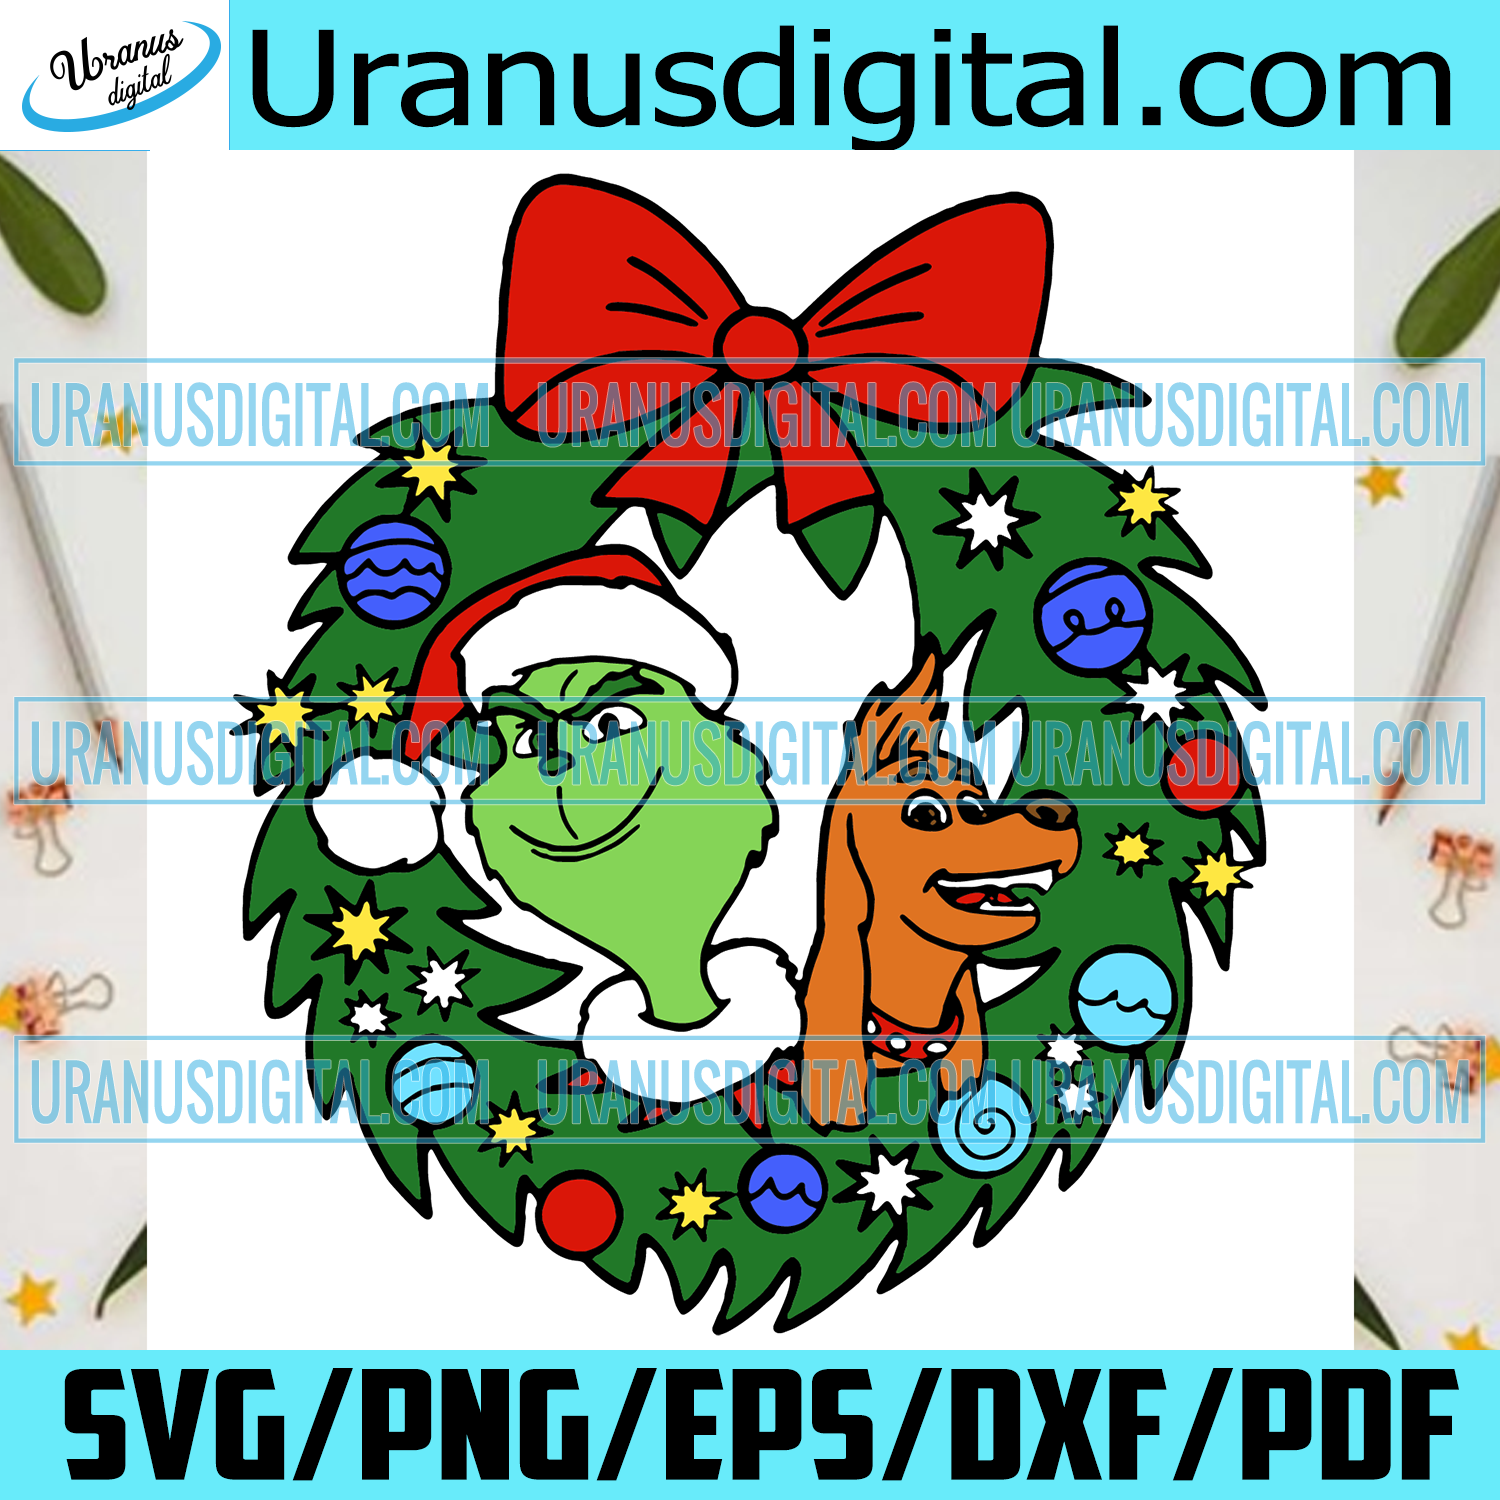 Grinch Max Christmas Wreath Svg, Christmas Svg, Grinch Svg, Xmas Svg, Merry Christmas, Christmas Grinch, Grinch Dog Svg, Christmas Gift, Christmas Wreath, Gricnh Wreath, Grinchmas, Grinch Gift